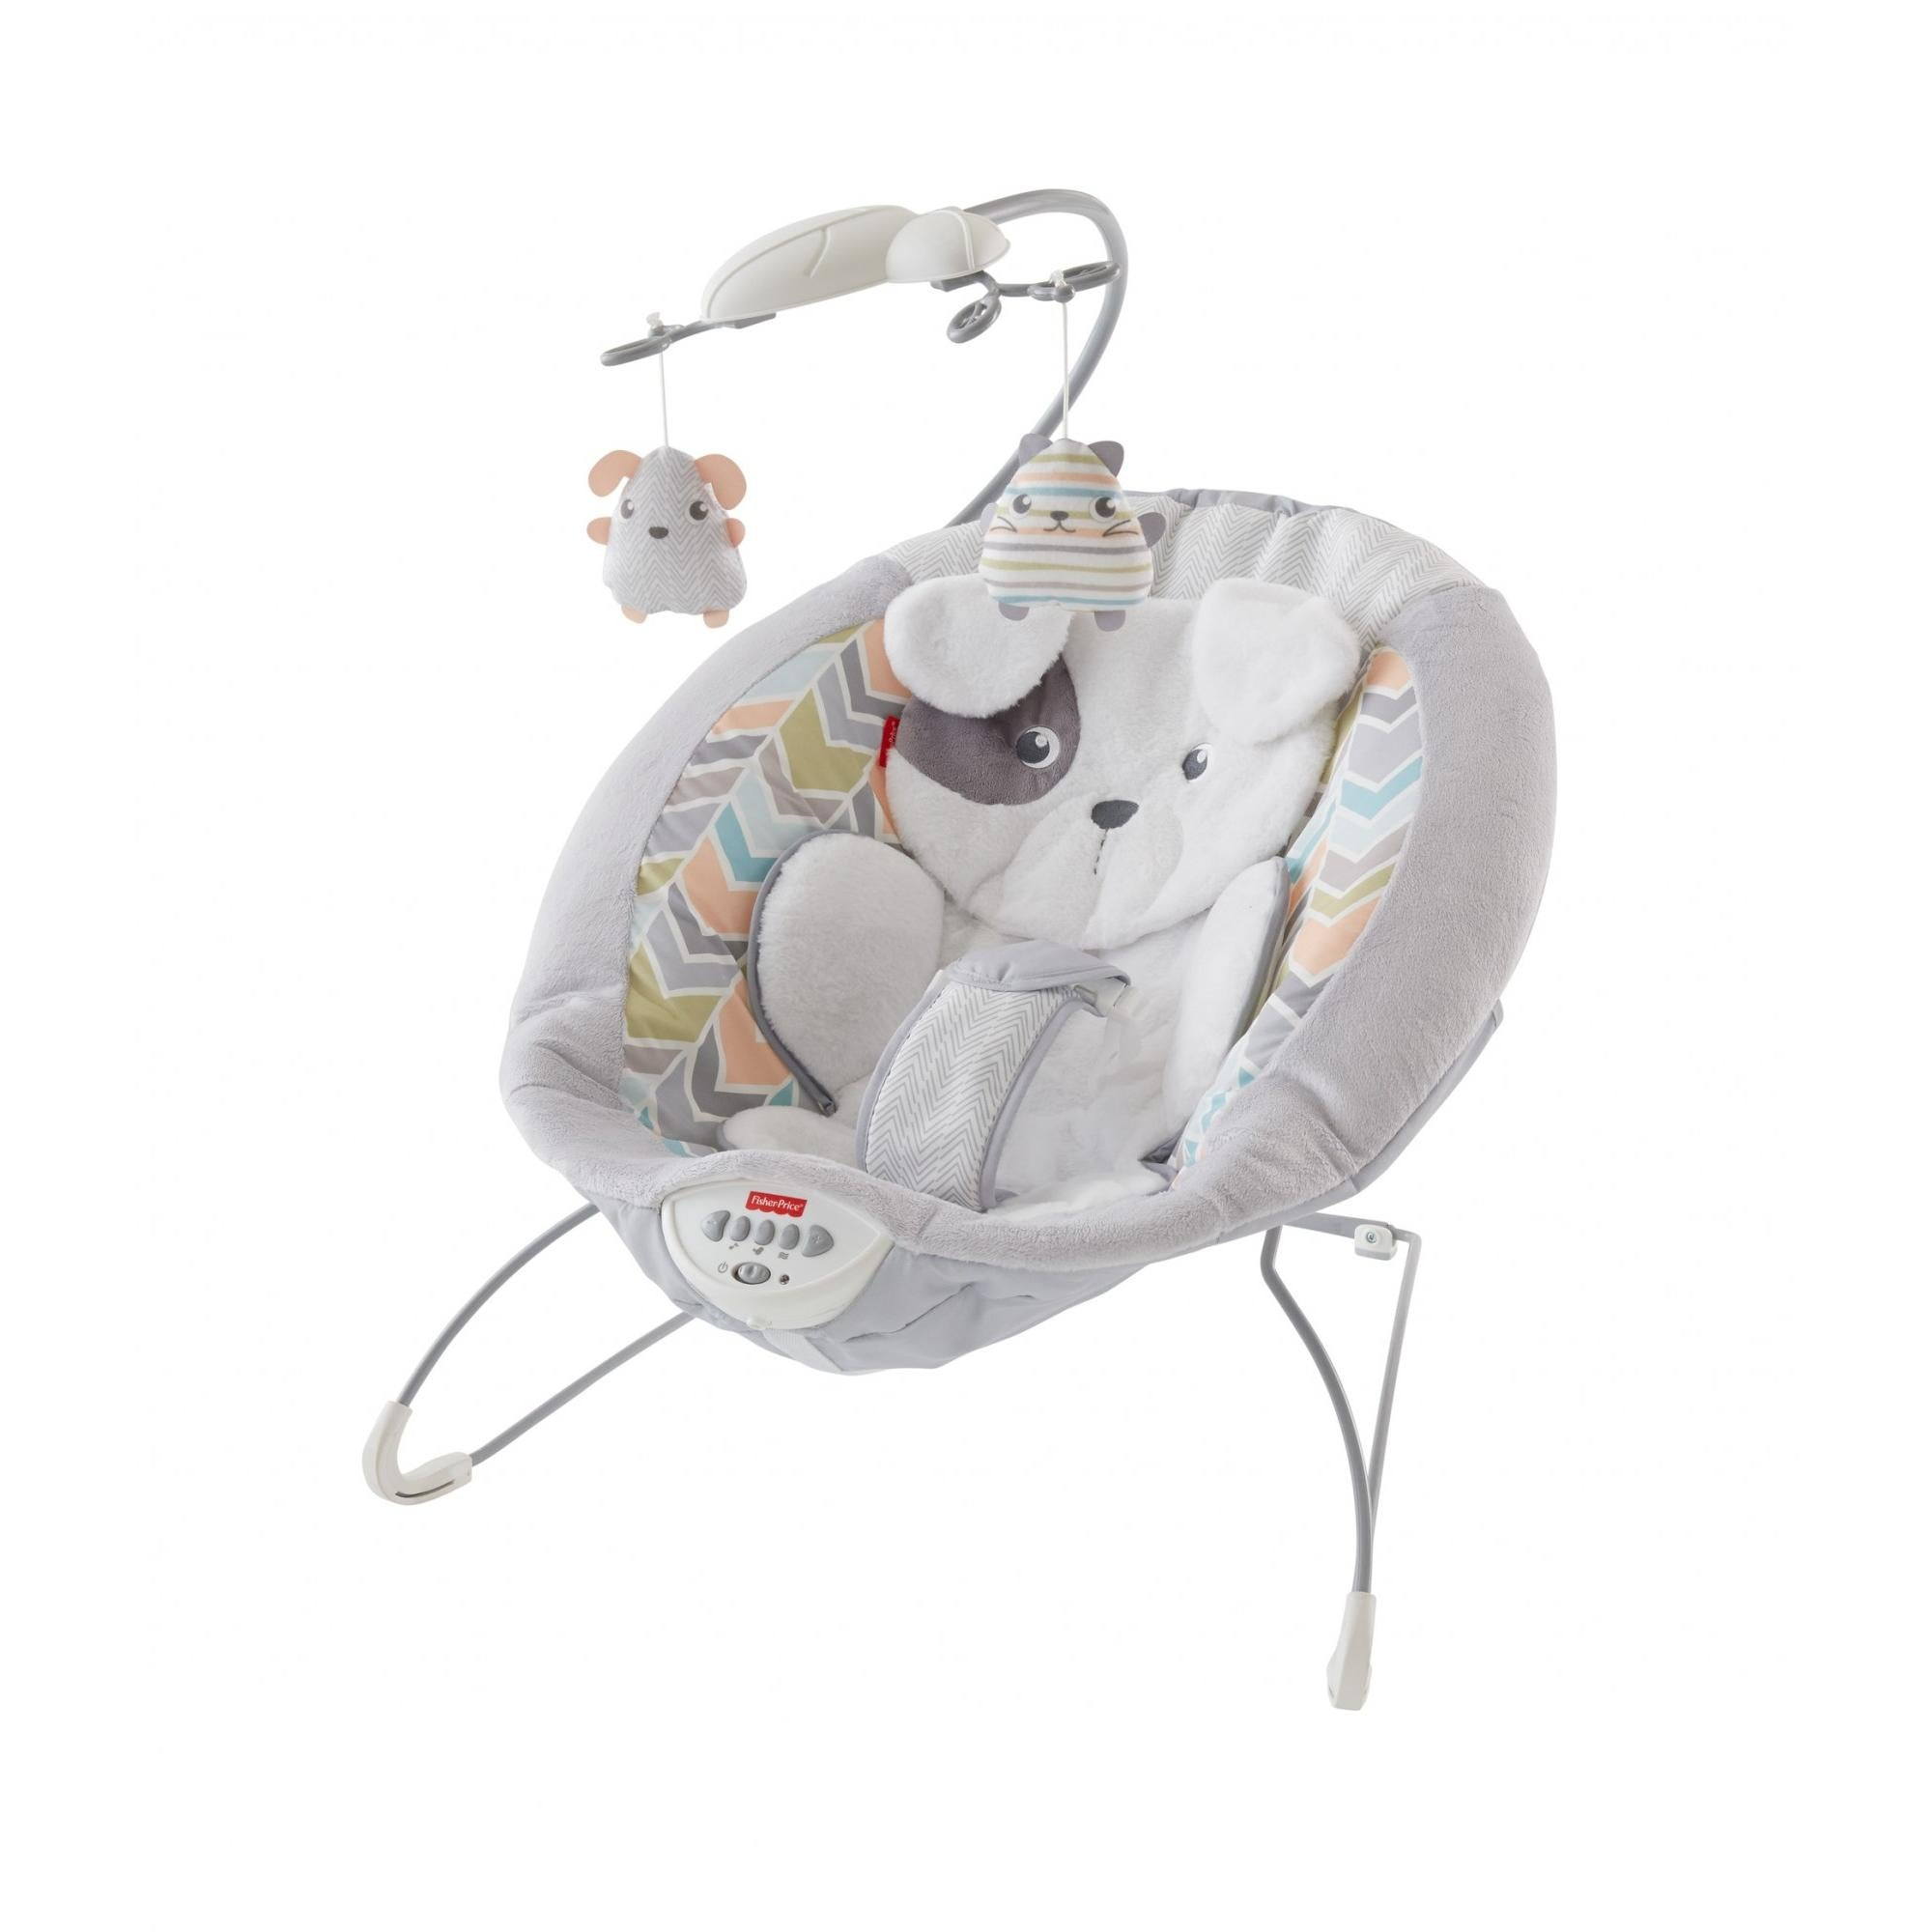 Fisher Price Sweet Snugapuppy Dreams Bouncer